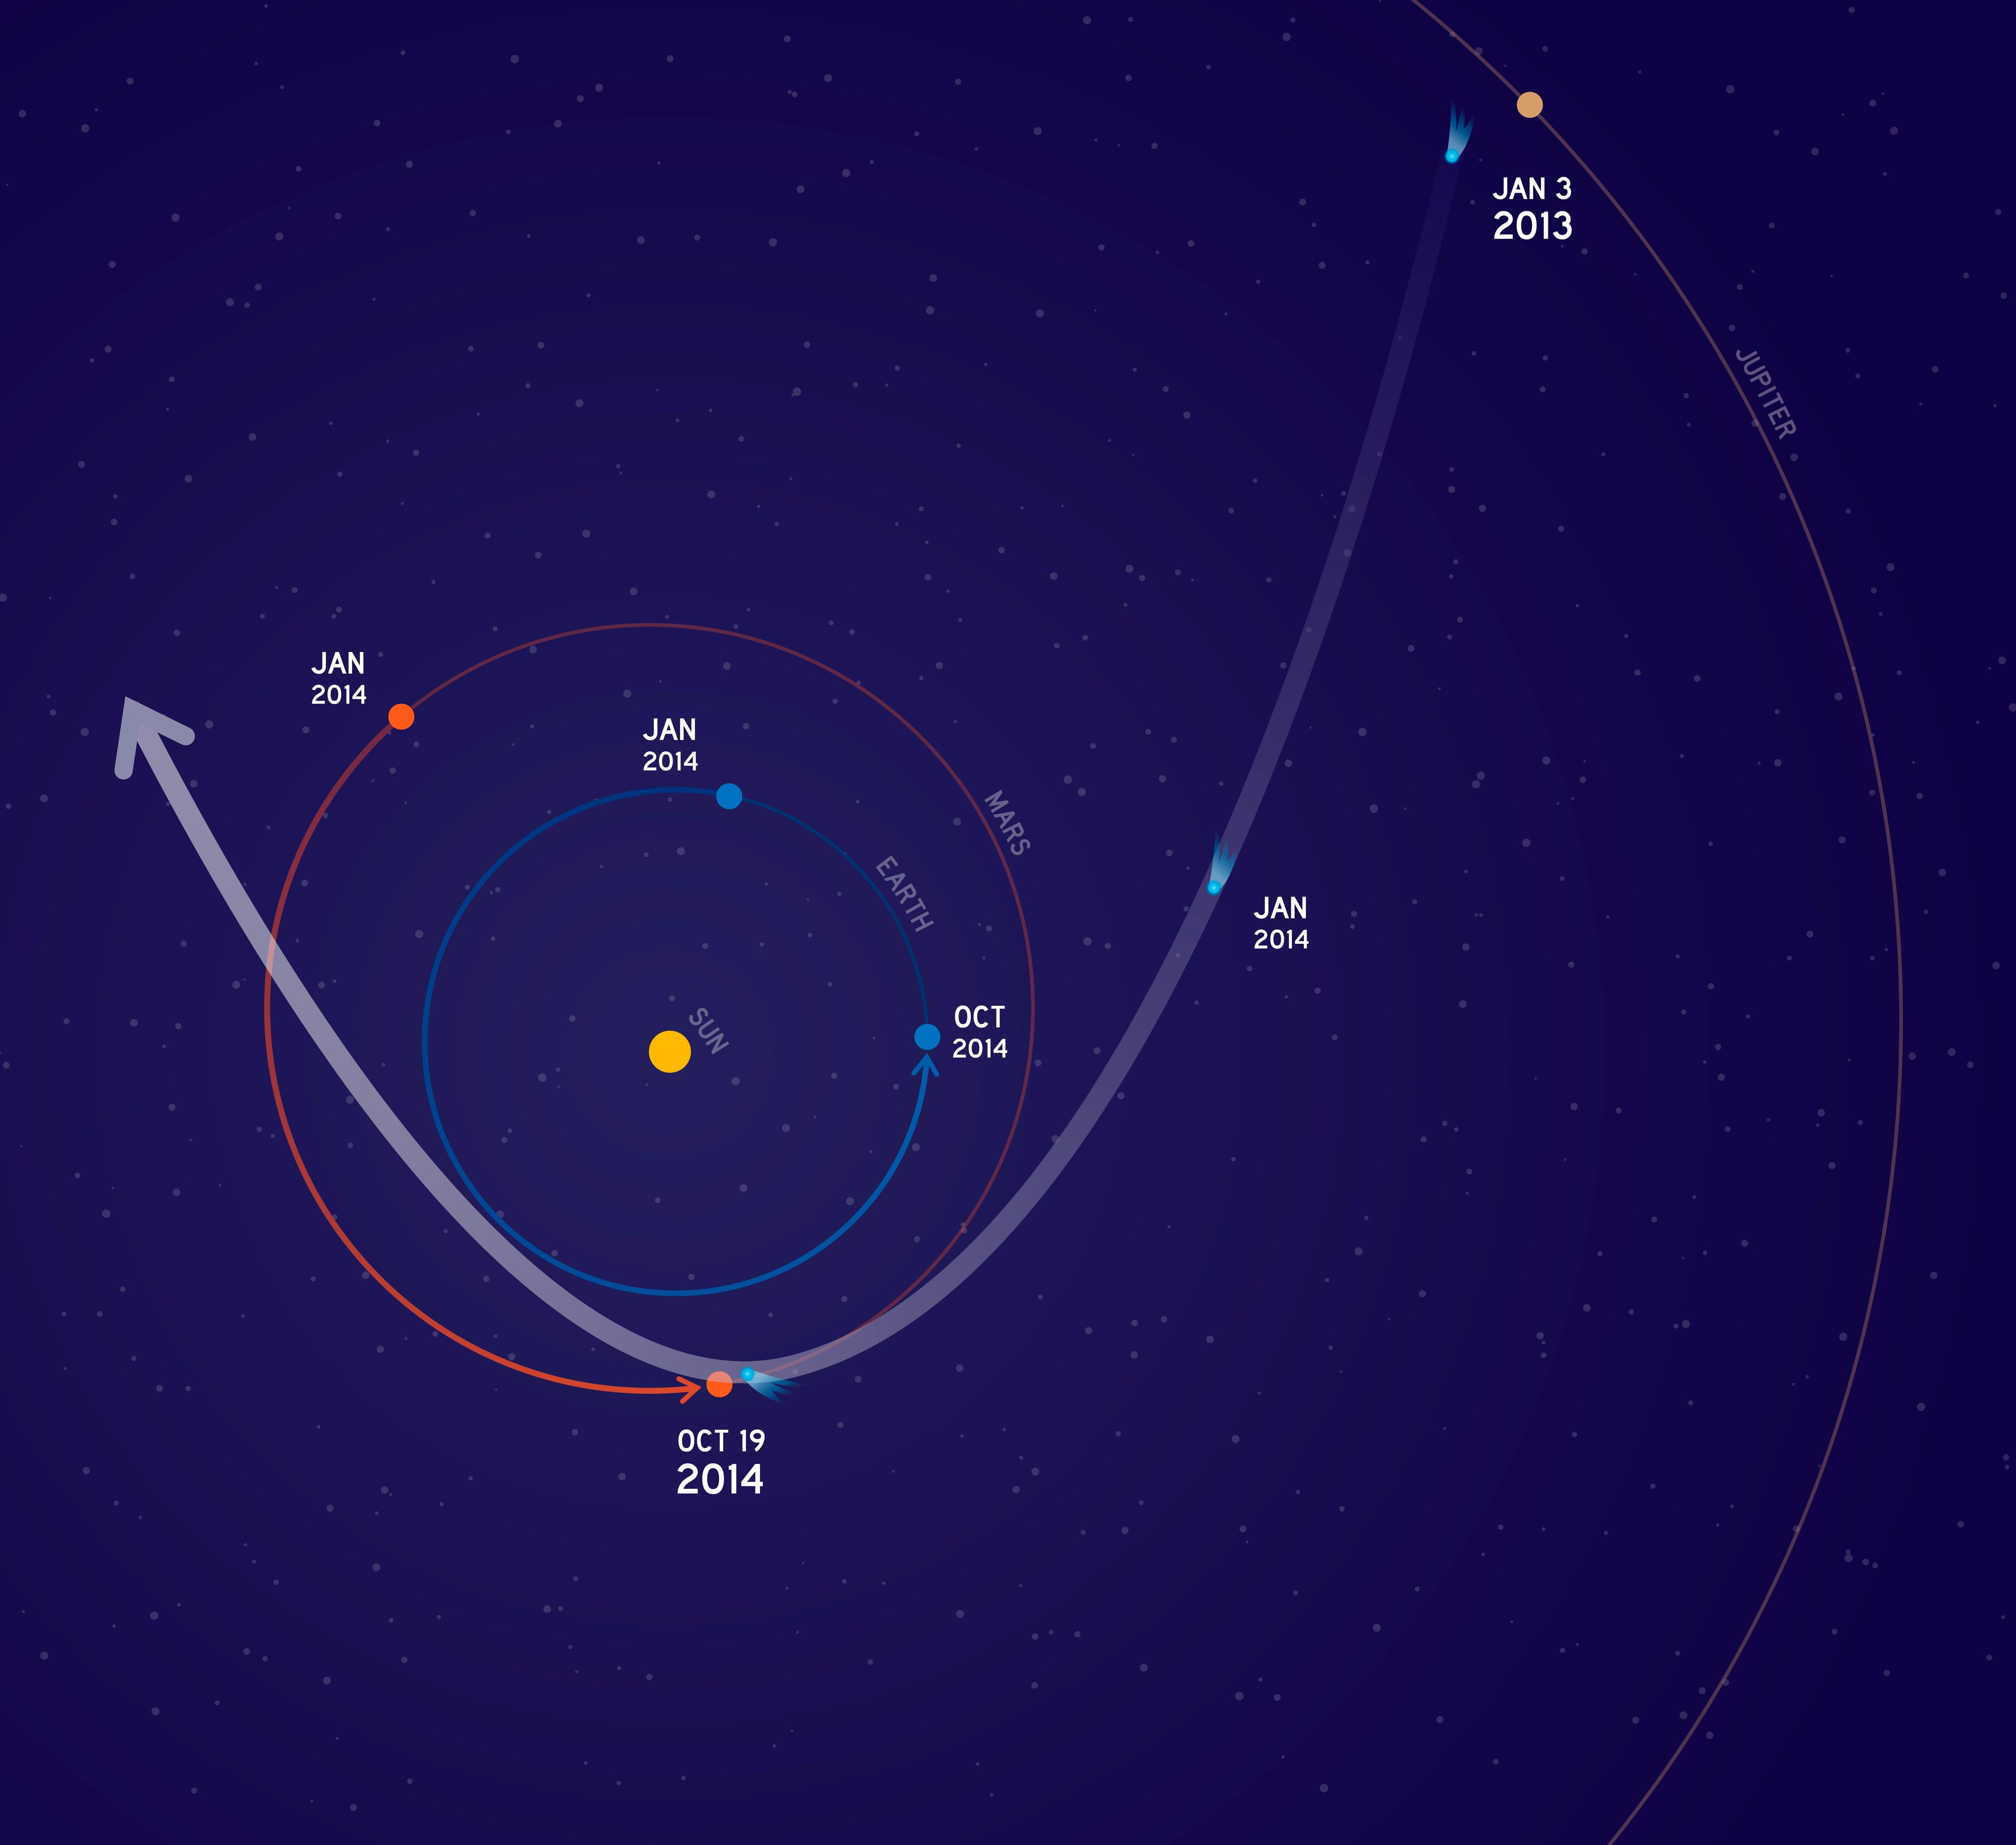 Comet Siding Spring C 2013 A1 Will Fly Past Mars Clean Version